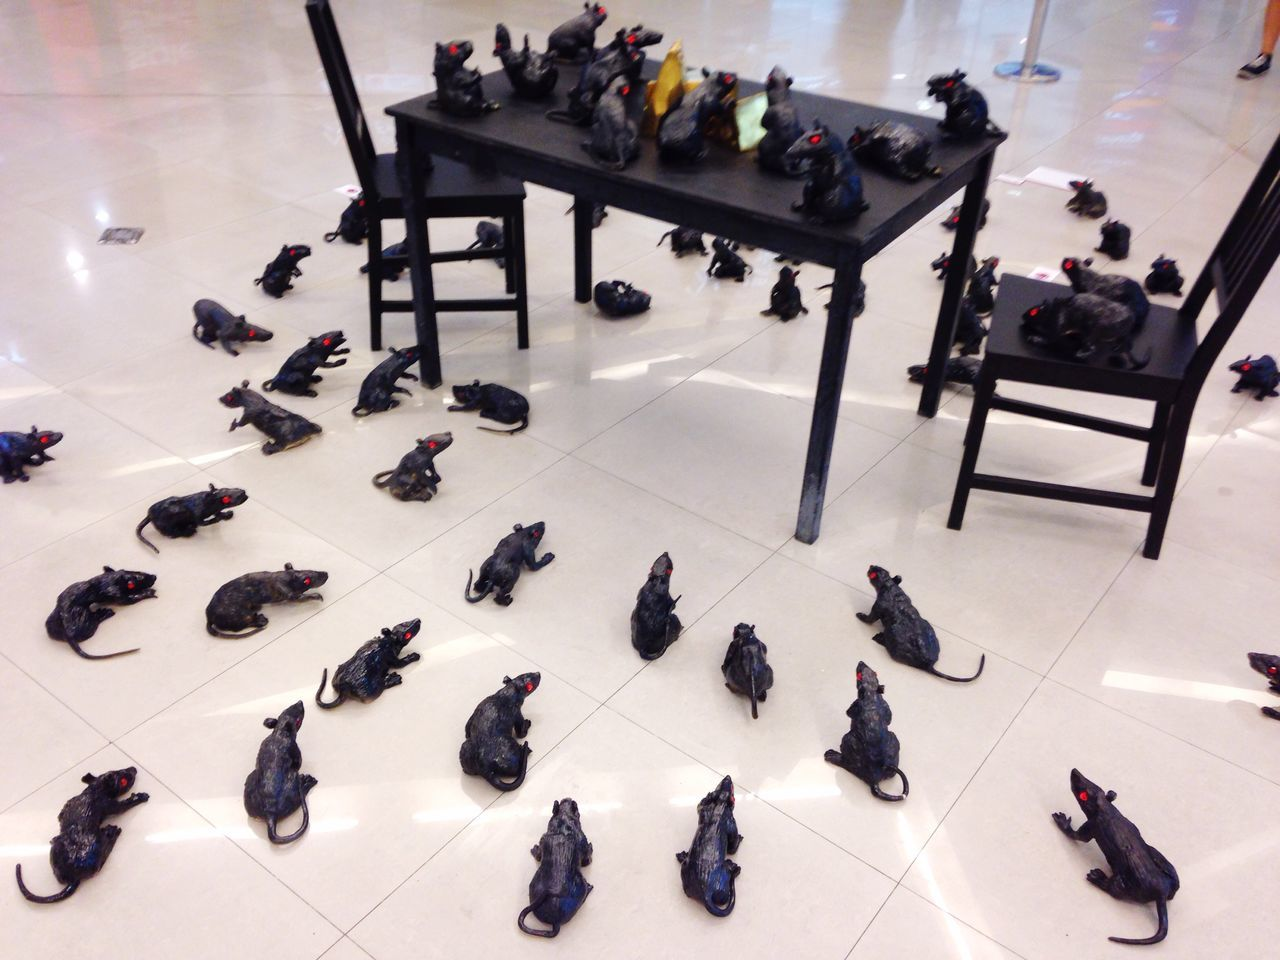 Family rats Black Rats Black Table Big Rats Installation Art Exhibition Bangkok